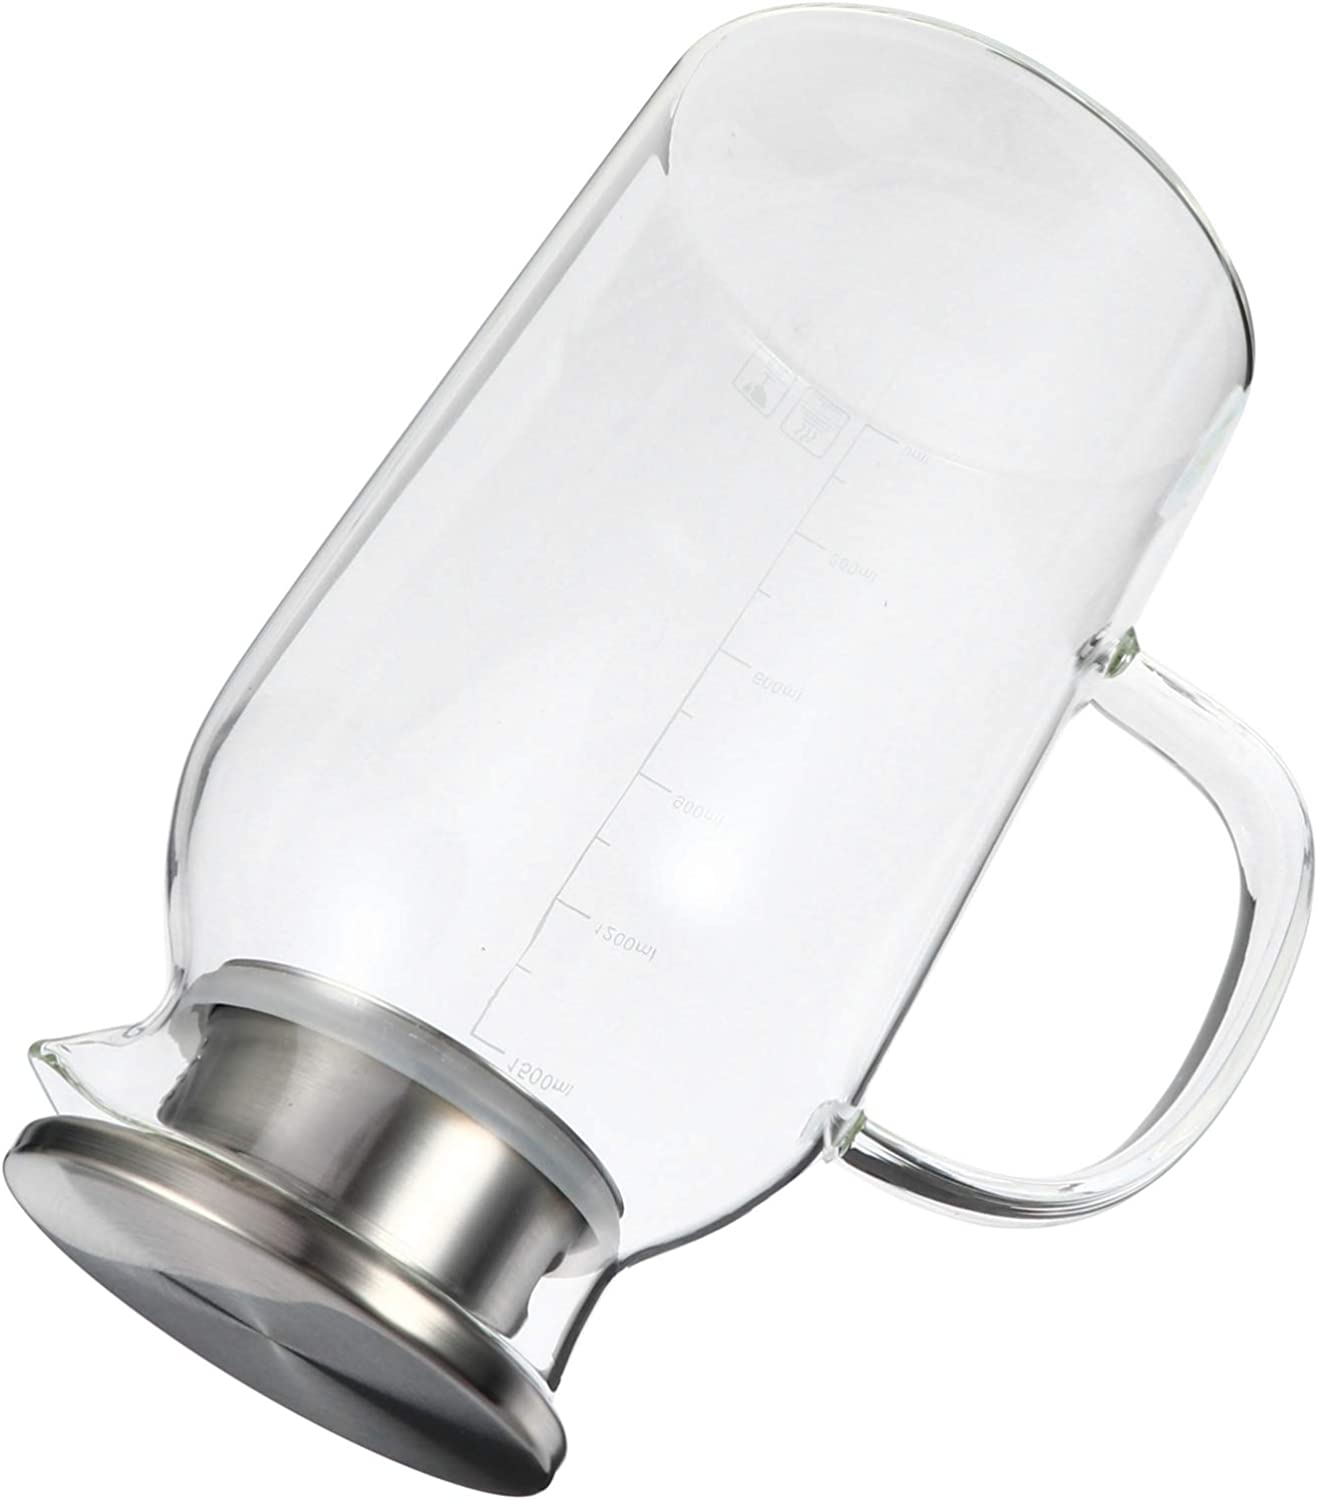 Yardwe 1800ML Glass Iced Tea Heat-Resistant Water Pitcher Max 59% Max 90% OFF OFF Large